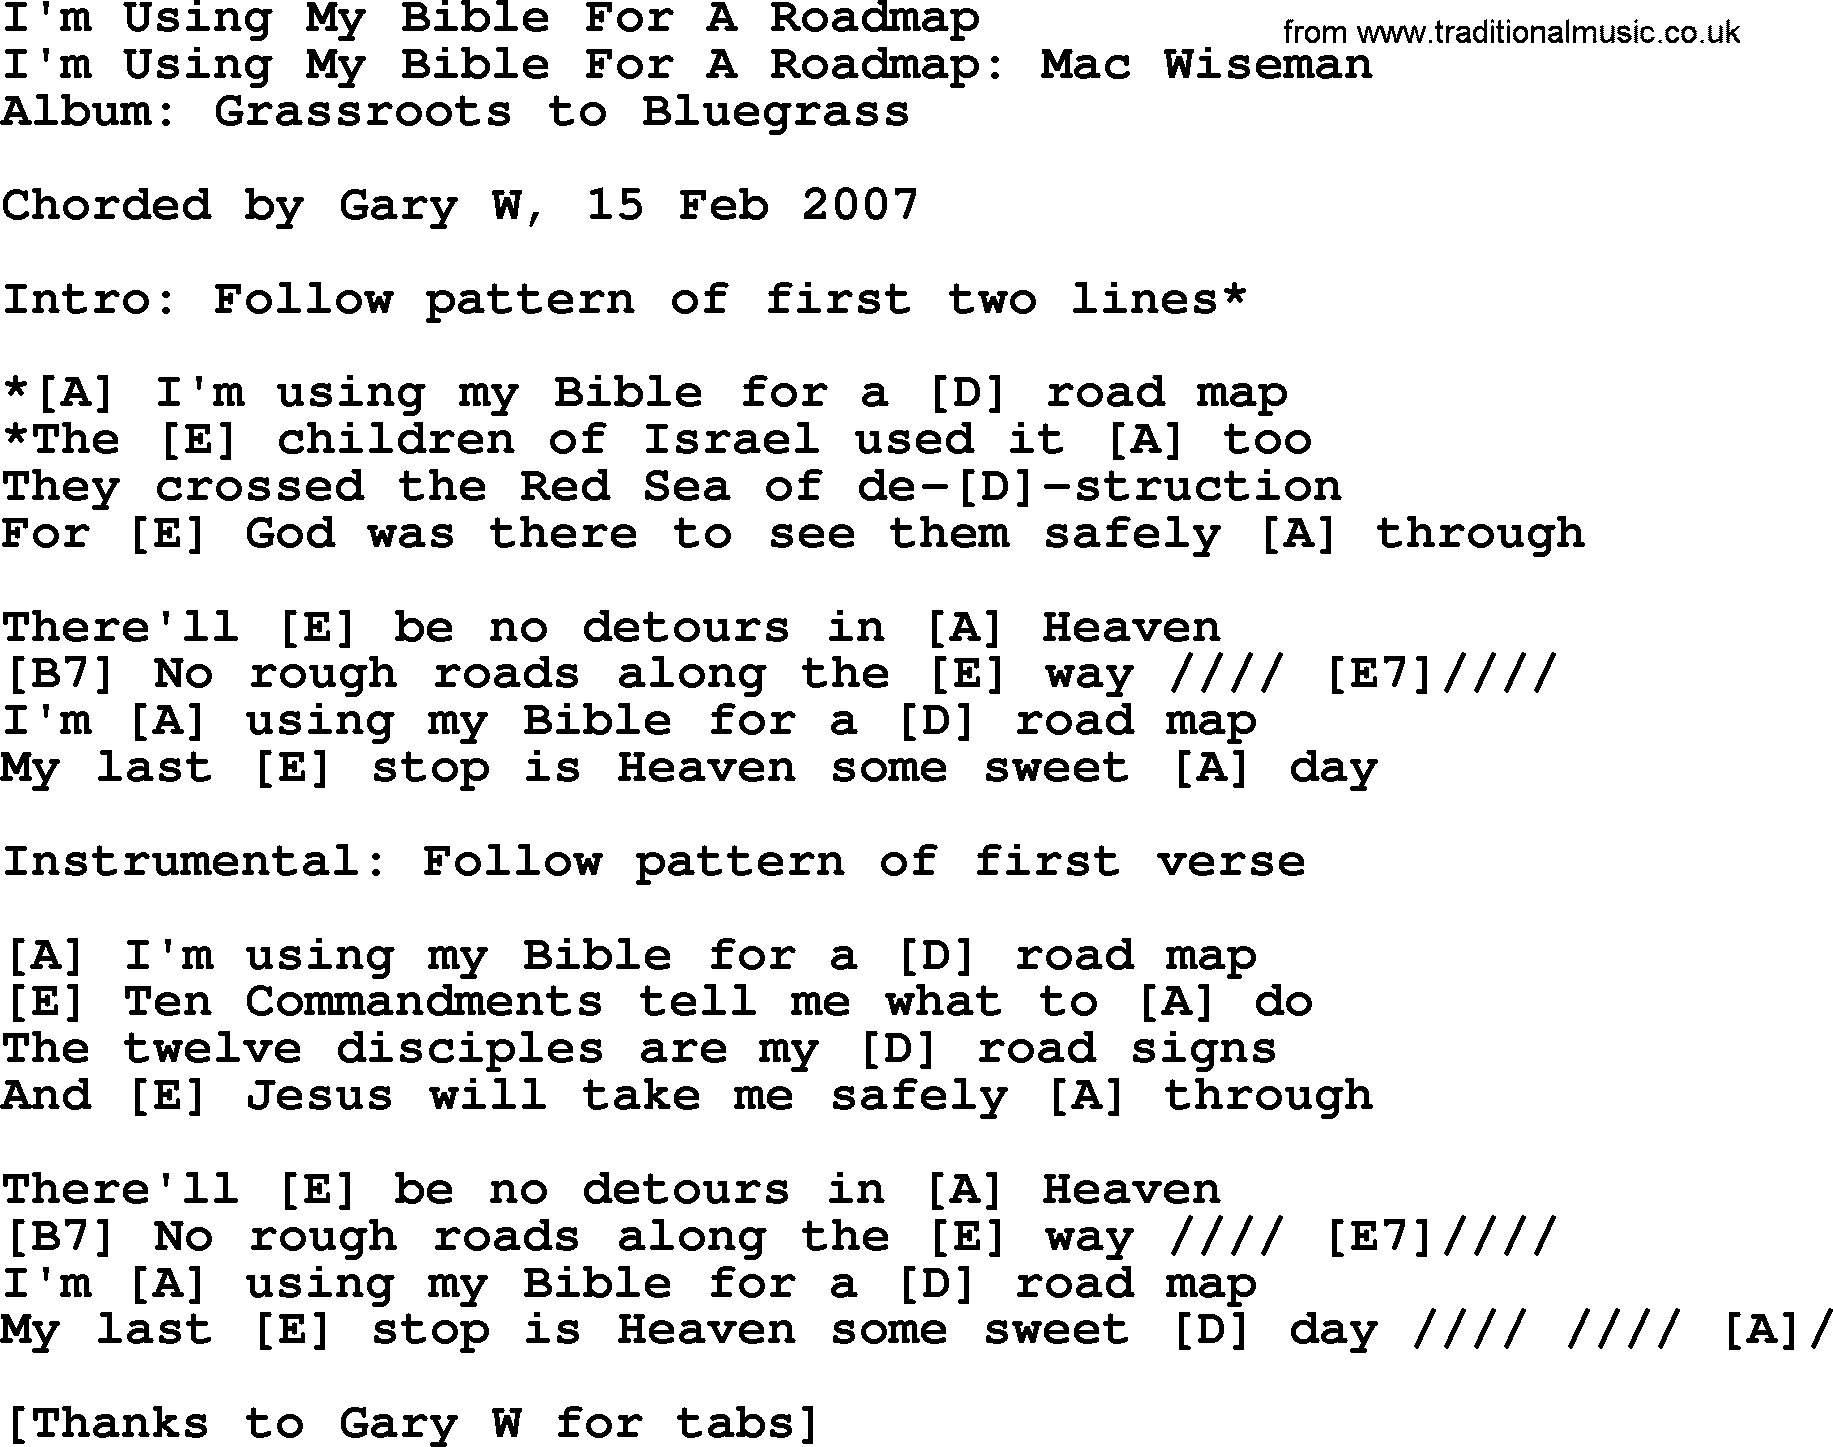 I'm Using My Bible For A Roadmap 2 - Bluegrass lyrics with